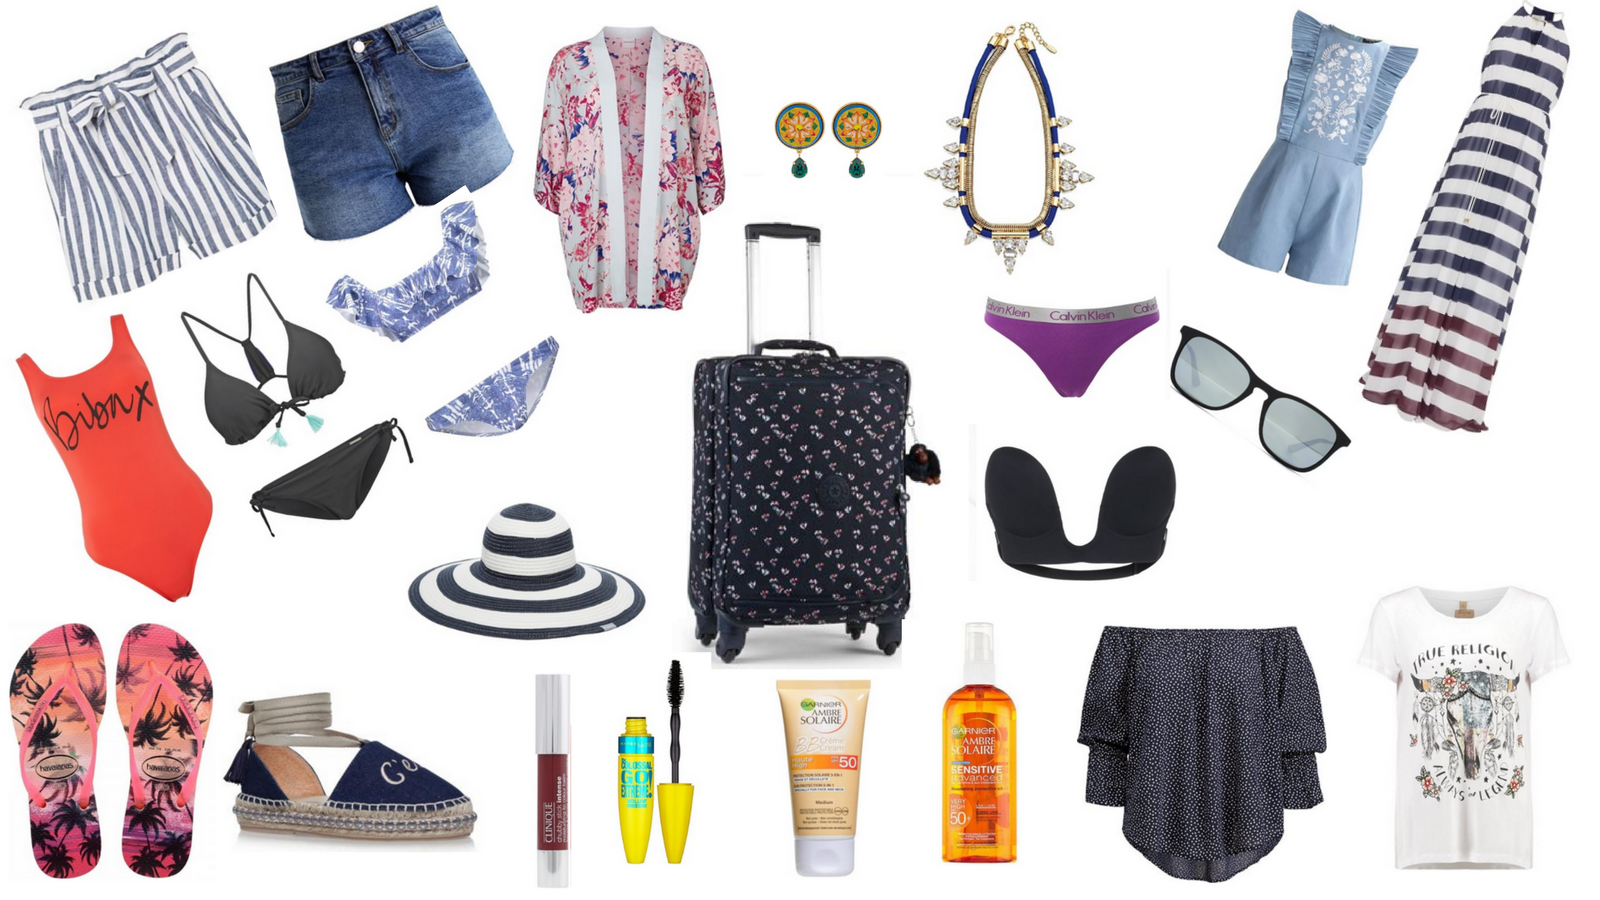 WHAT TO PACK : HAND LUGGAGE ONLY